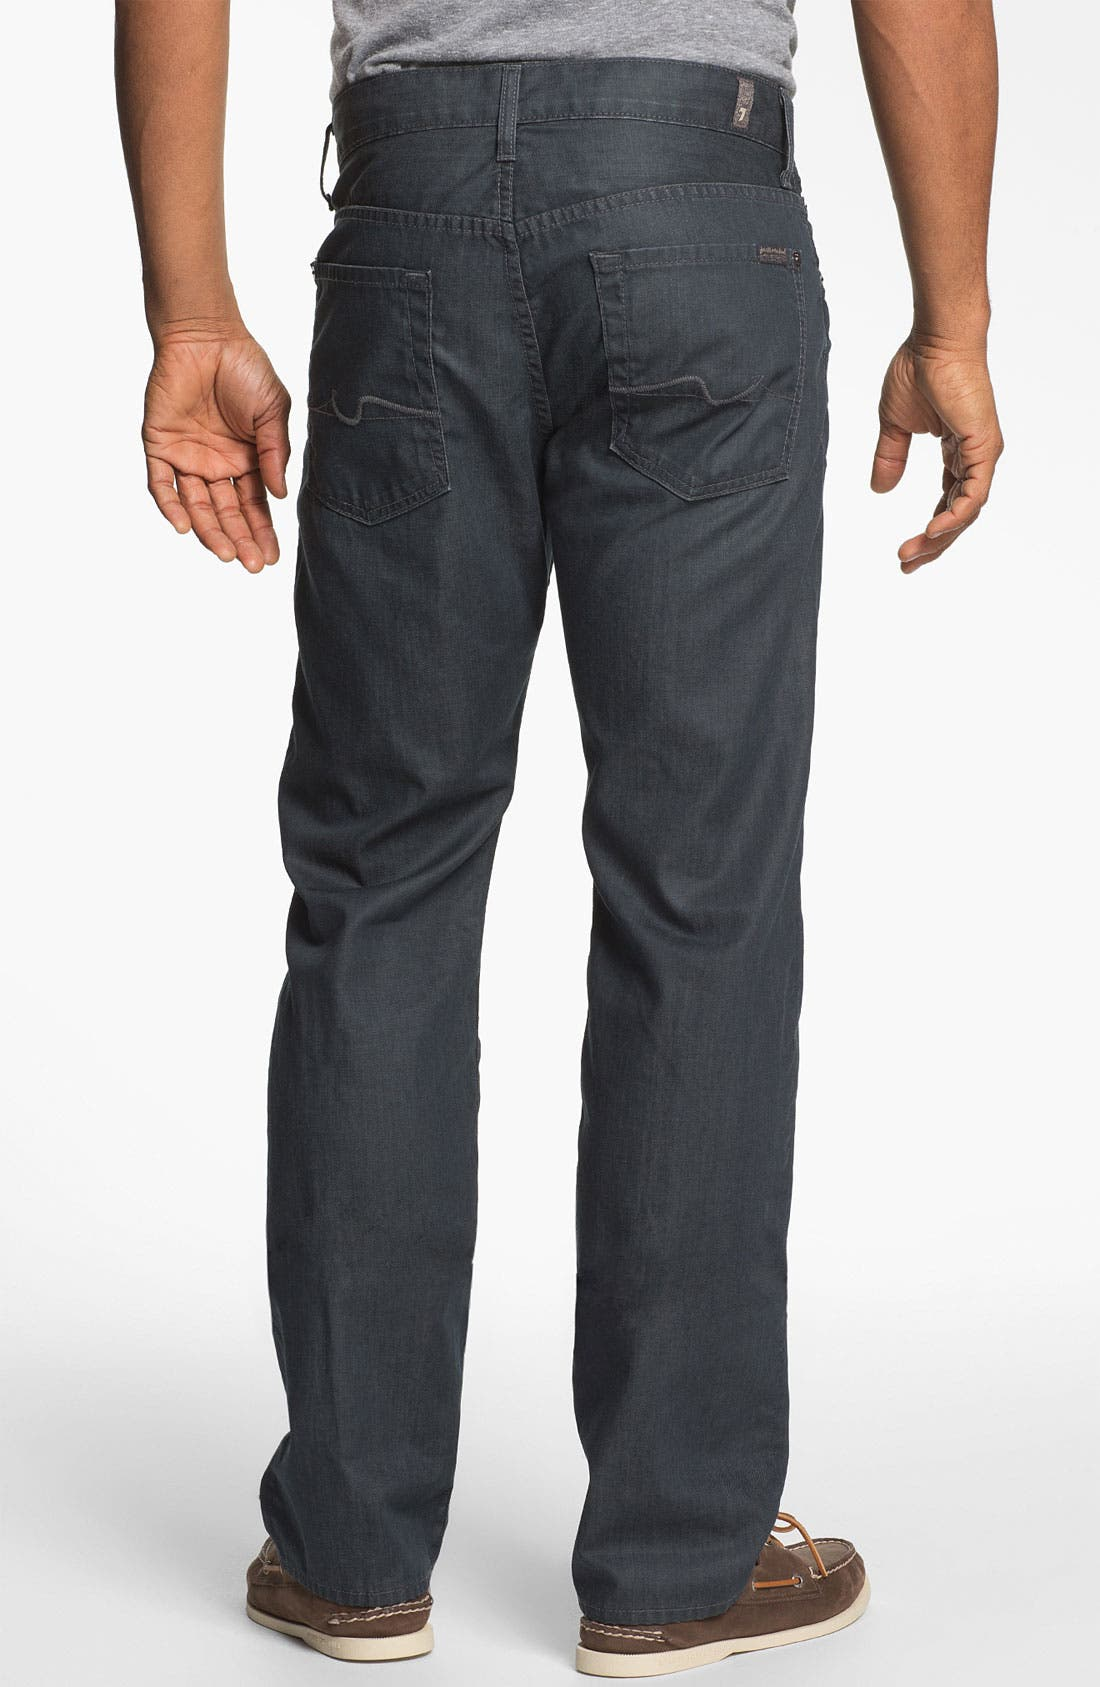 Alternate Image 1 Selected - 7 For All Mankind® 'Slimmy' Slim Fit Jeans (Cool Grey)